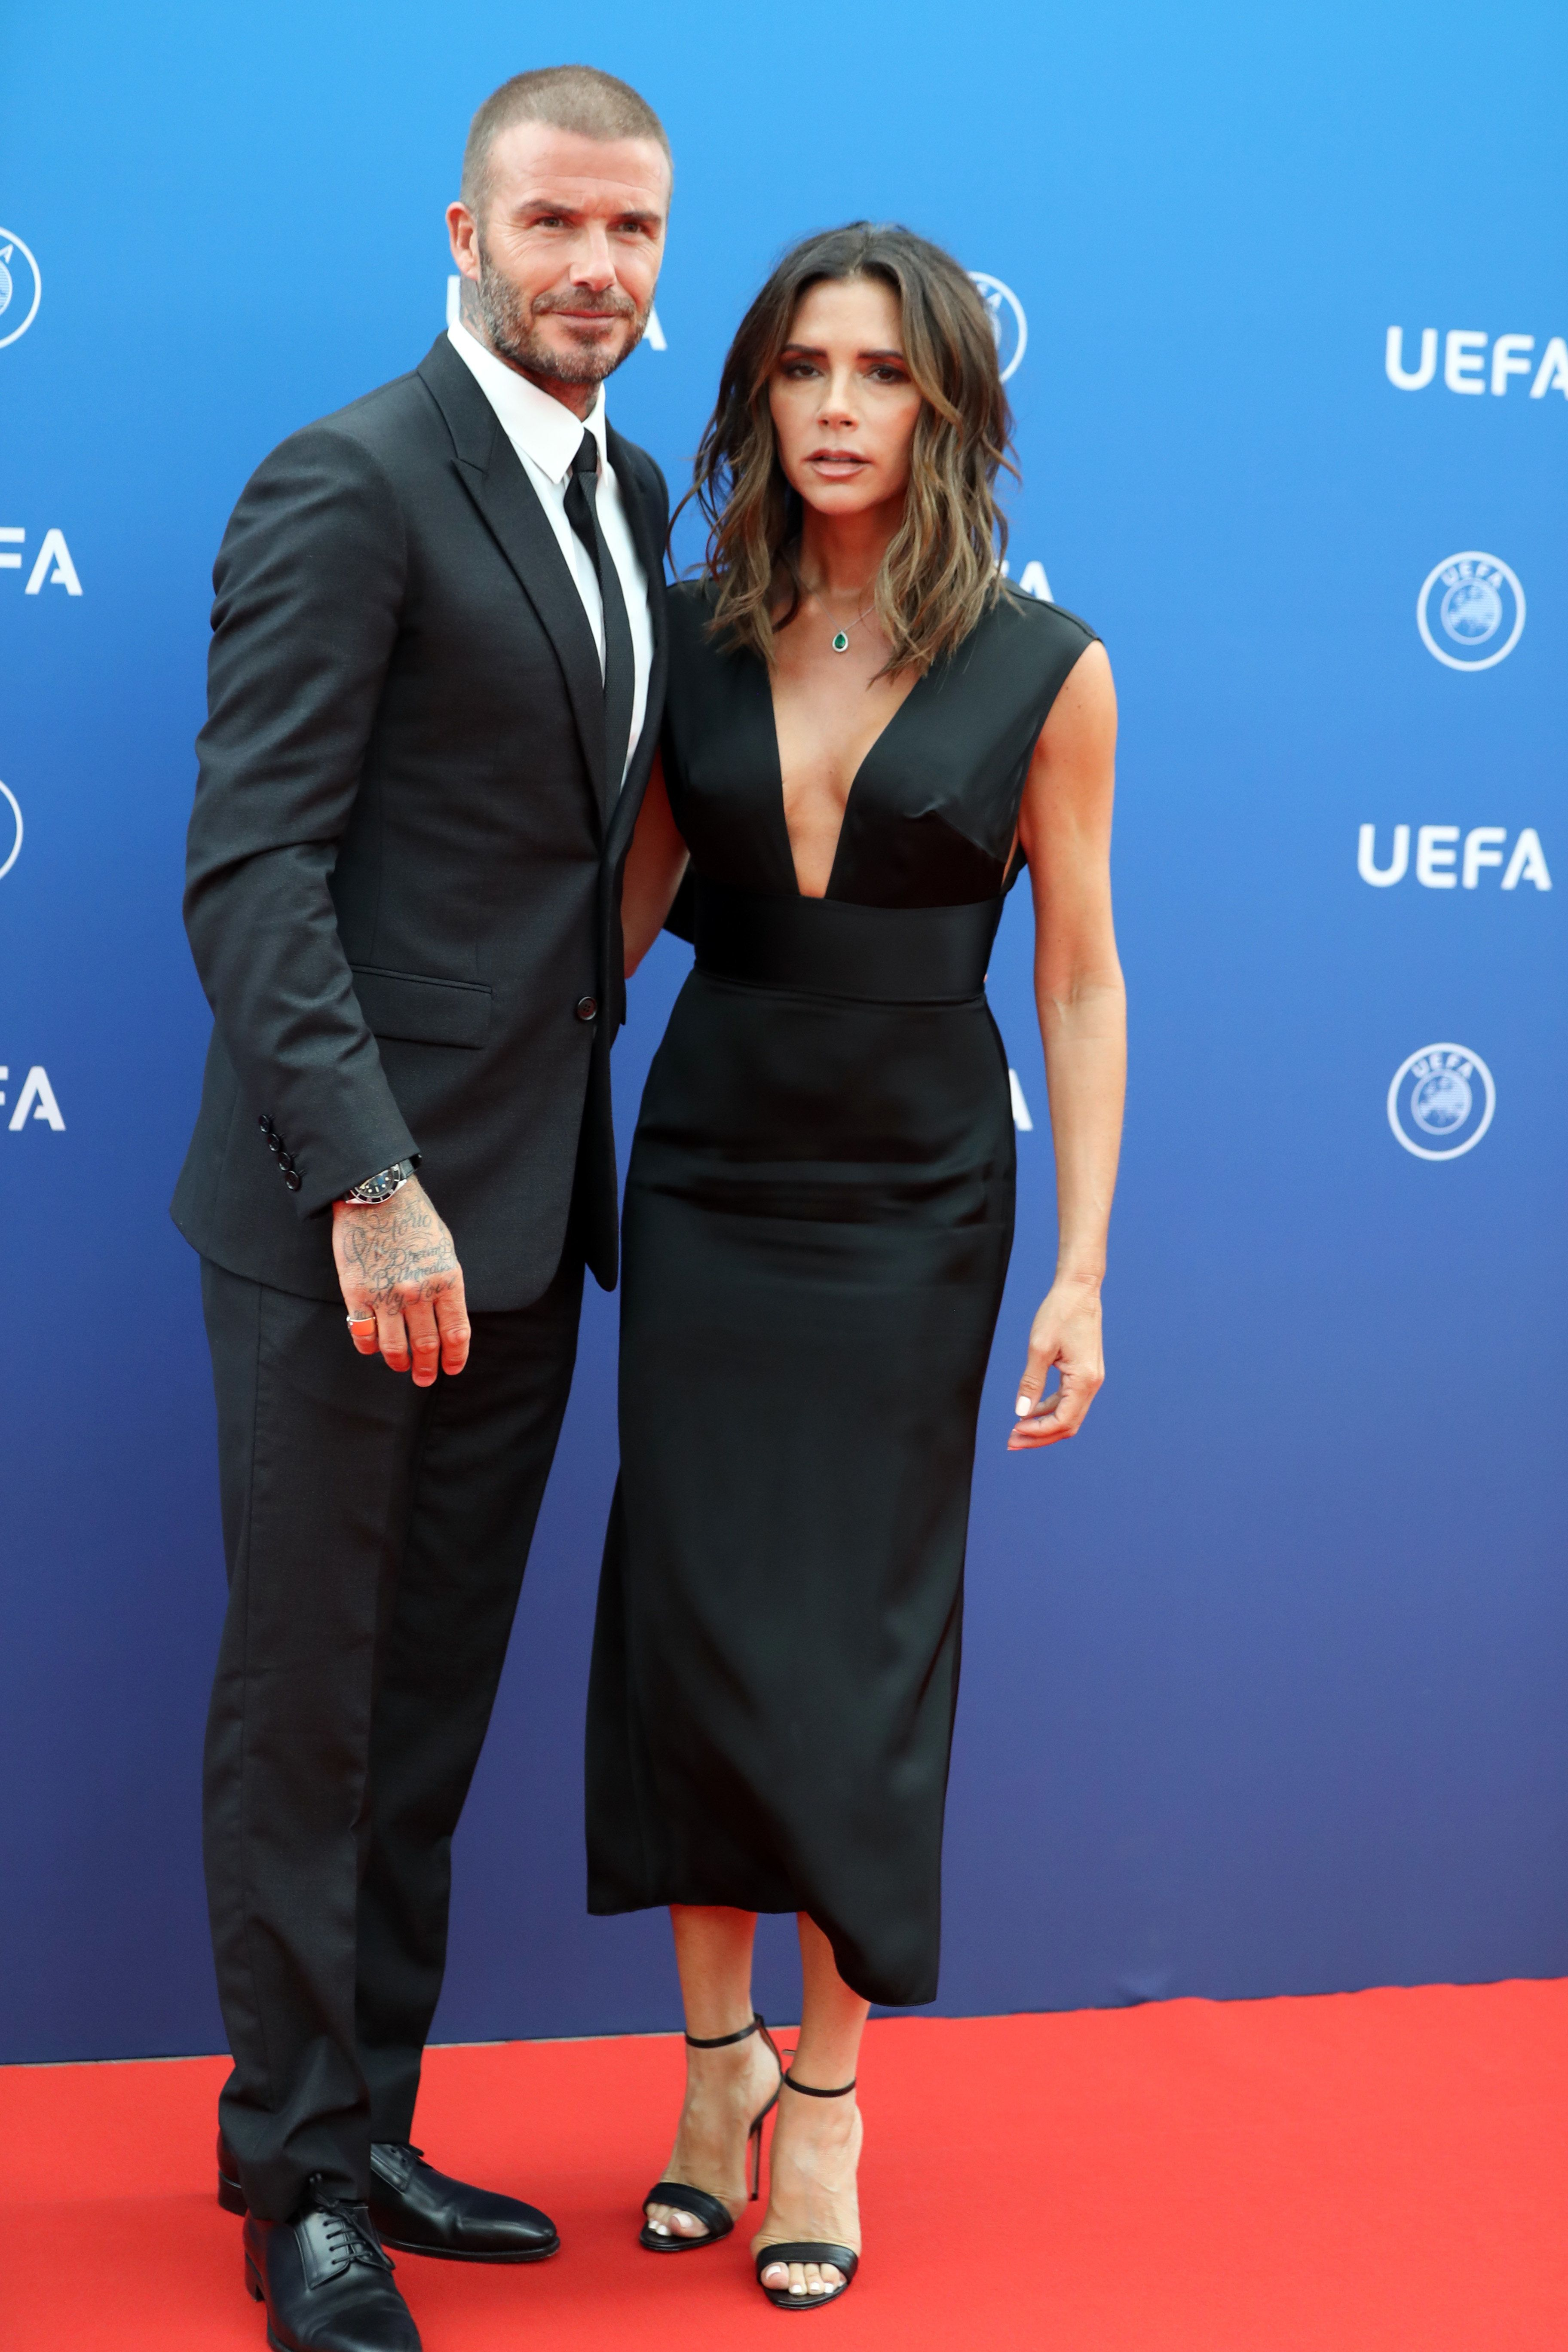 TARGETED: David And Victoria Beckham's Home Targeted By Masked Thieves In Attempted